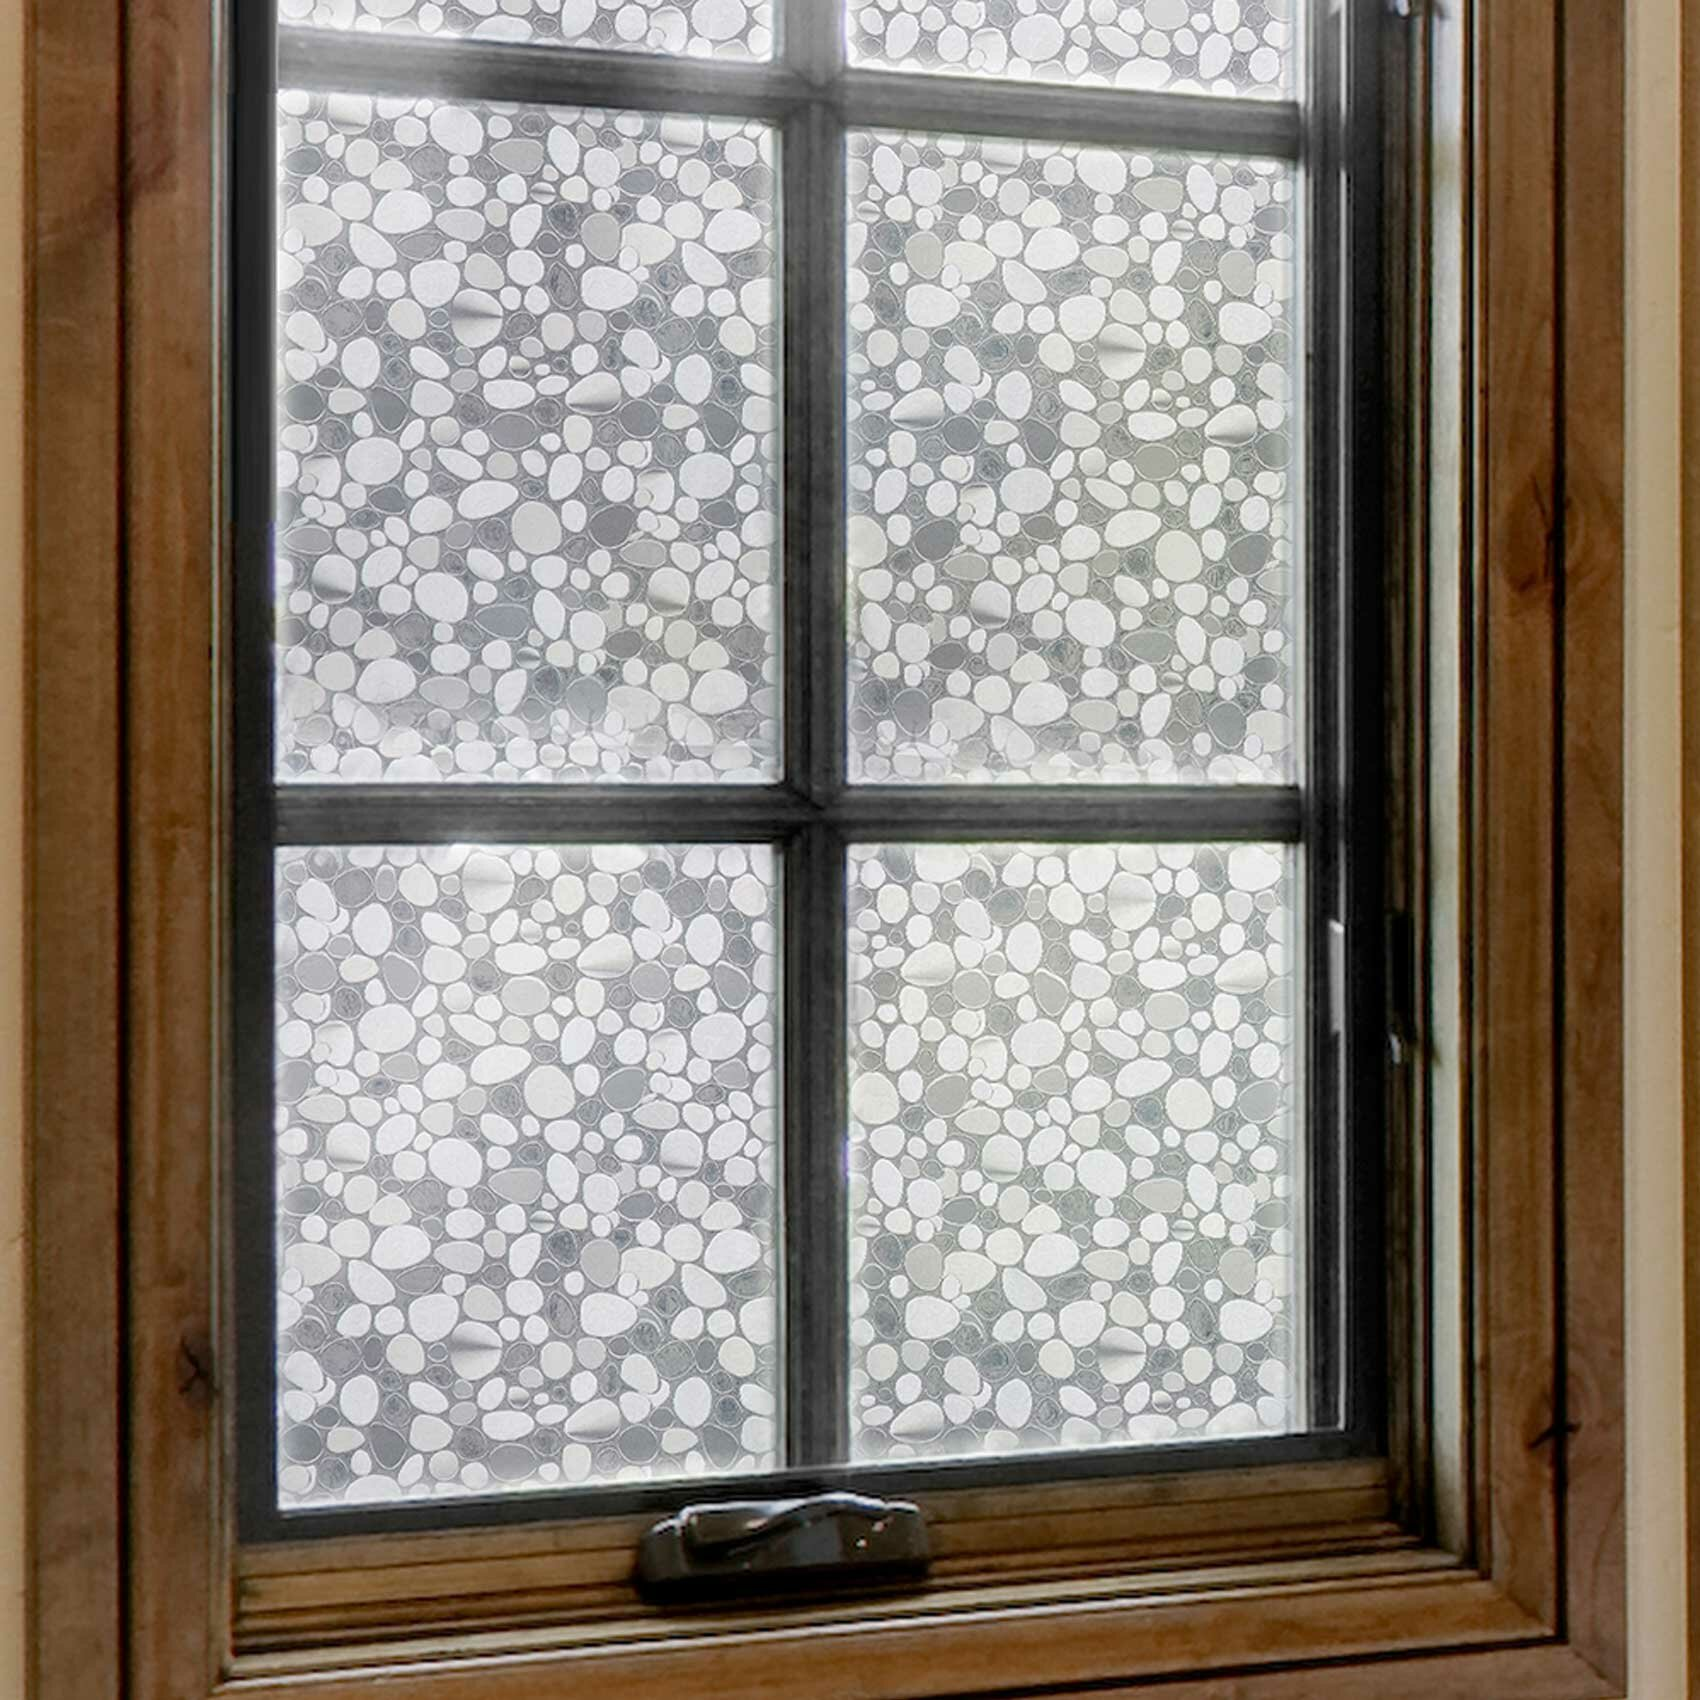 decorative film for bathroom windows orren ellis pebble decorative film privacy window decal wayfair  orren ellis pebble decorative film